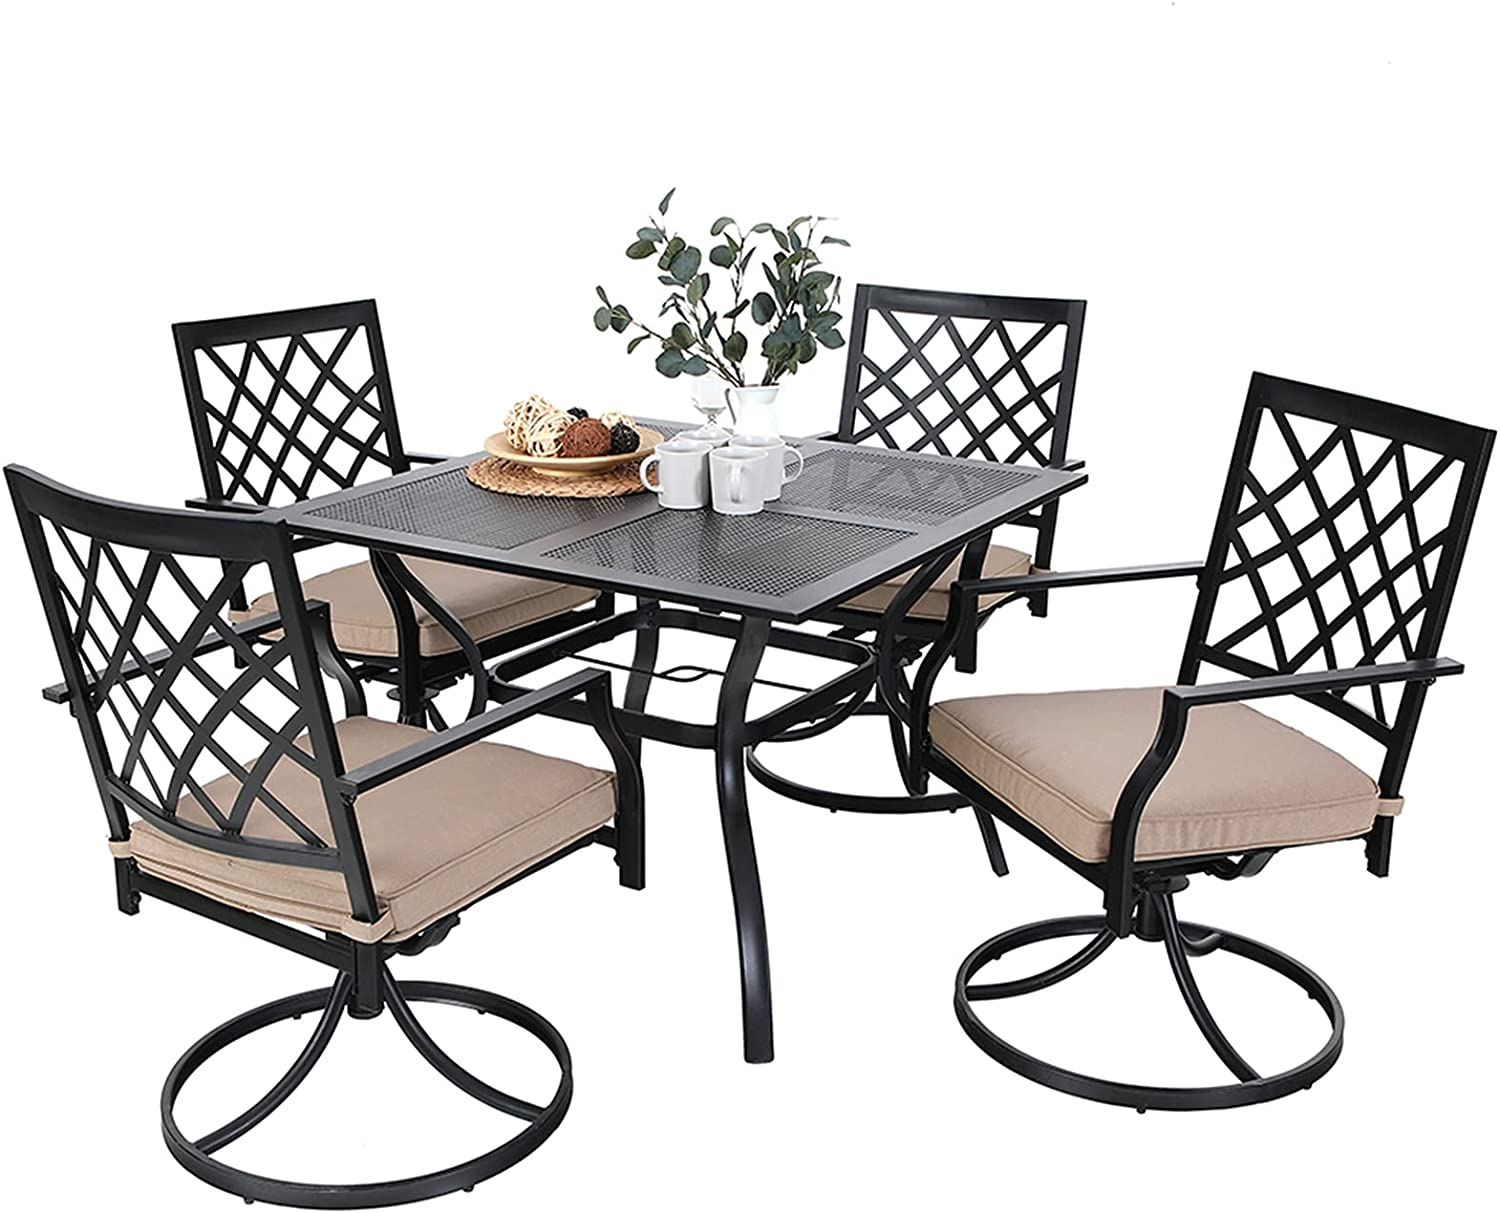 MFSTUDIO Patio 9 Piece Black Metal Outdoor Dining Table Set with 9 Swivel  Chairs and Steel Frame Slat Larger Square 9